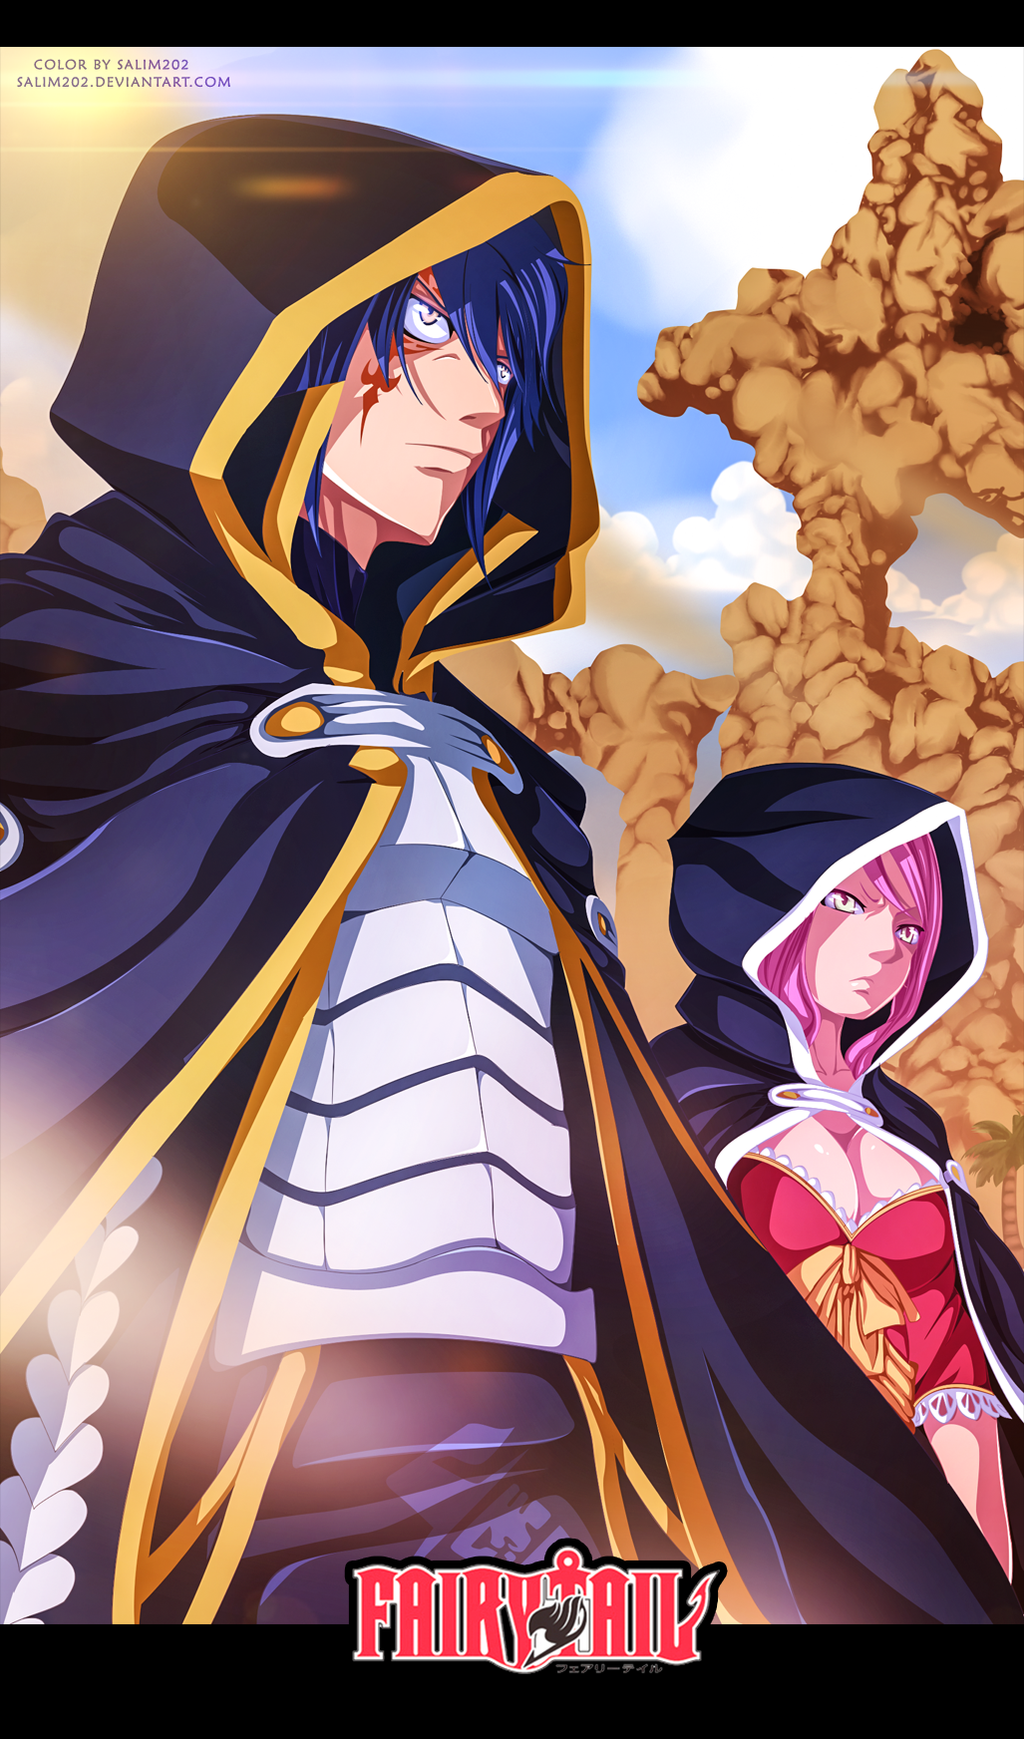 Jellal and meredy - Fairy Tail 364 by salim202